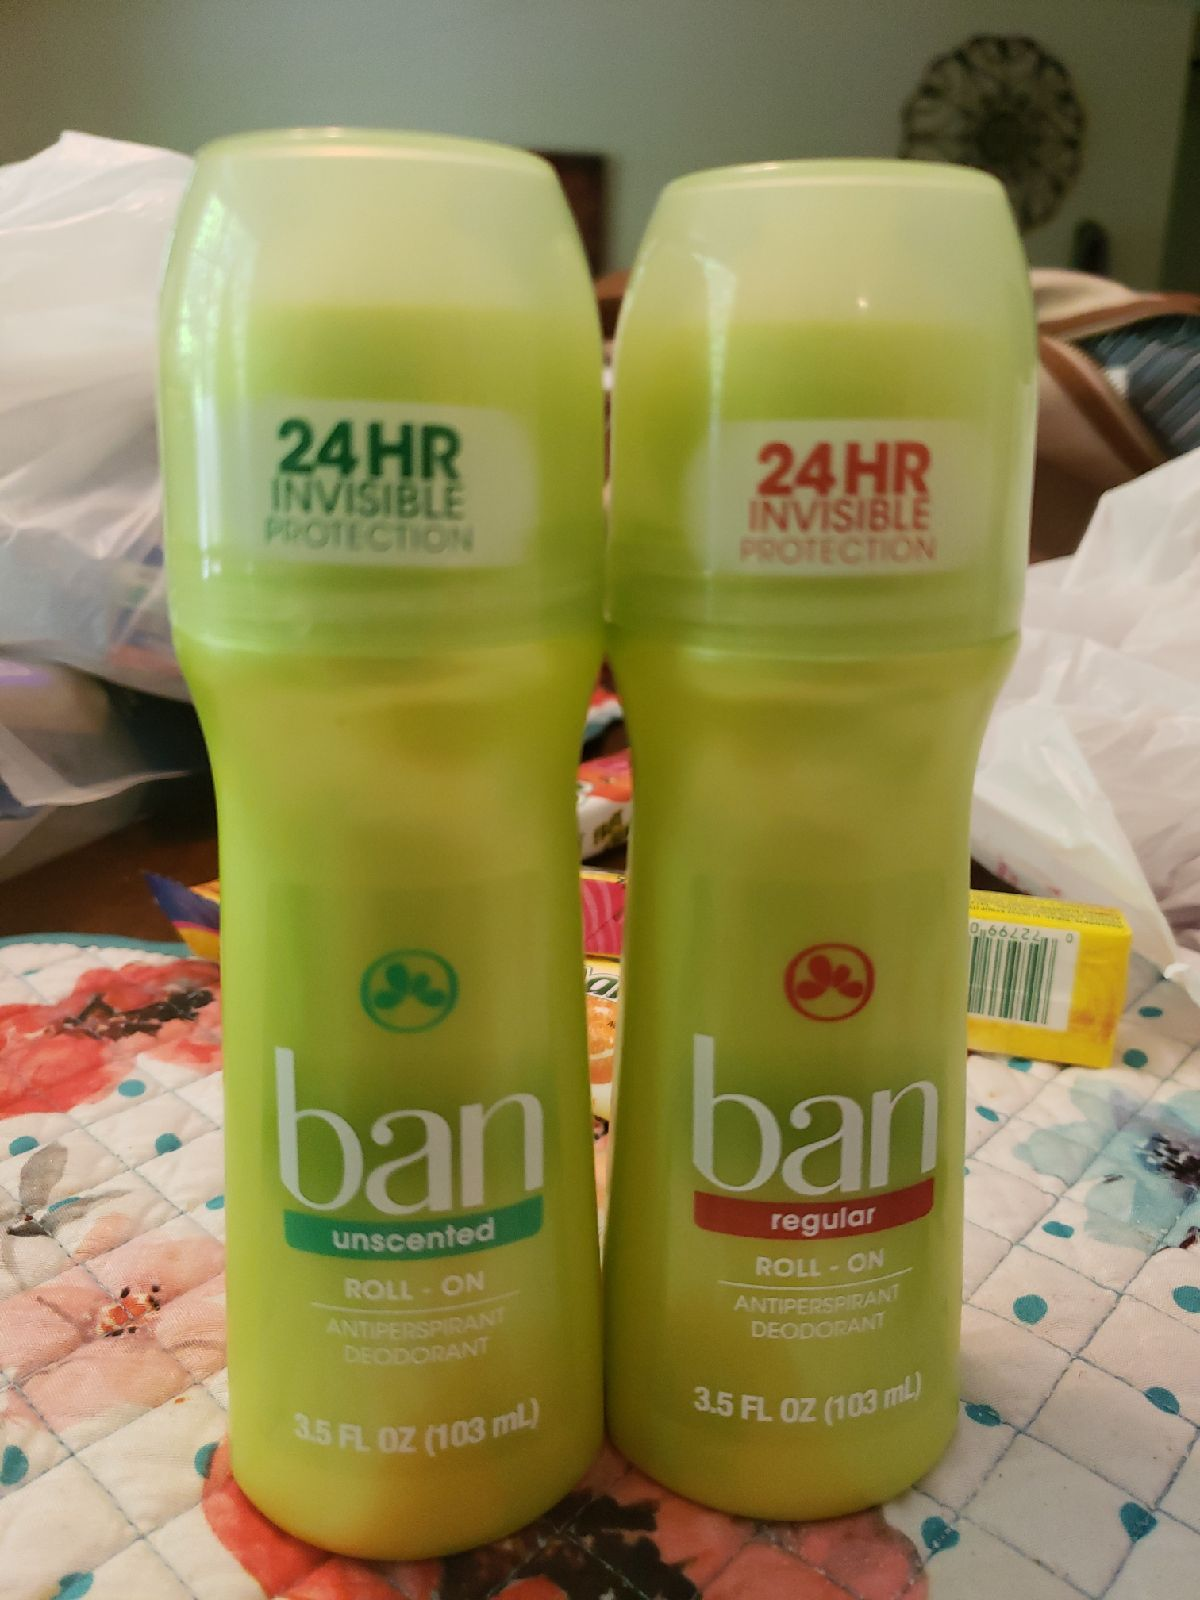 2 ban deodorant unscented and reg